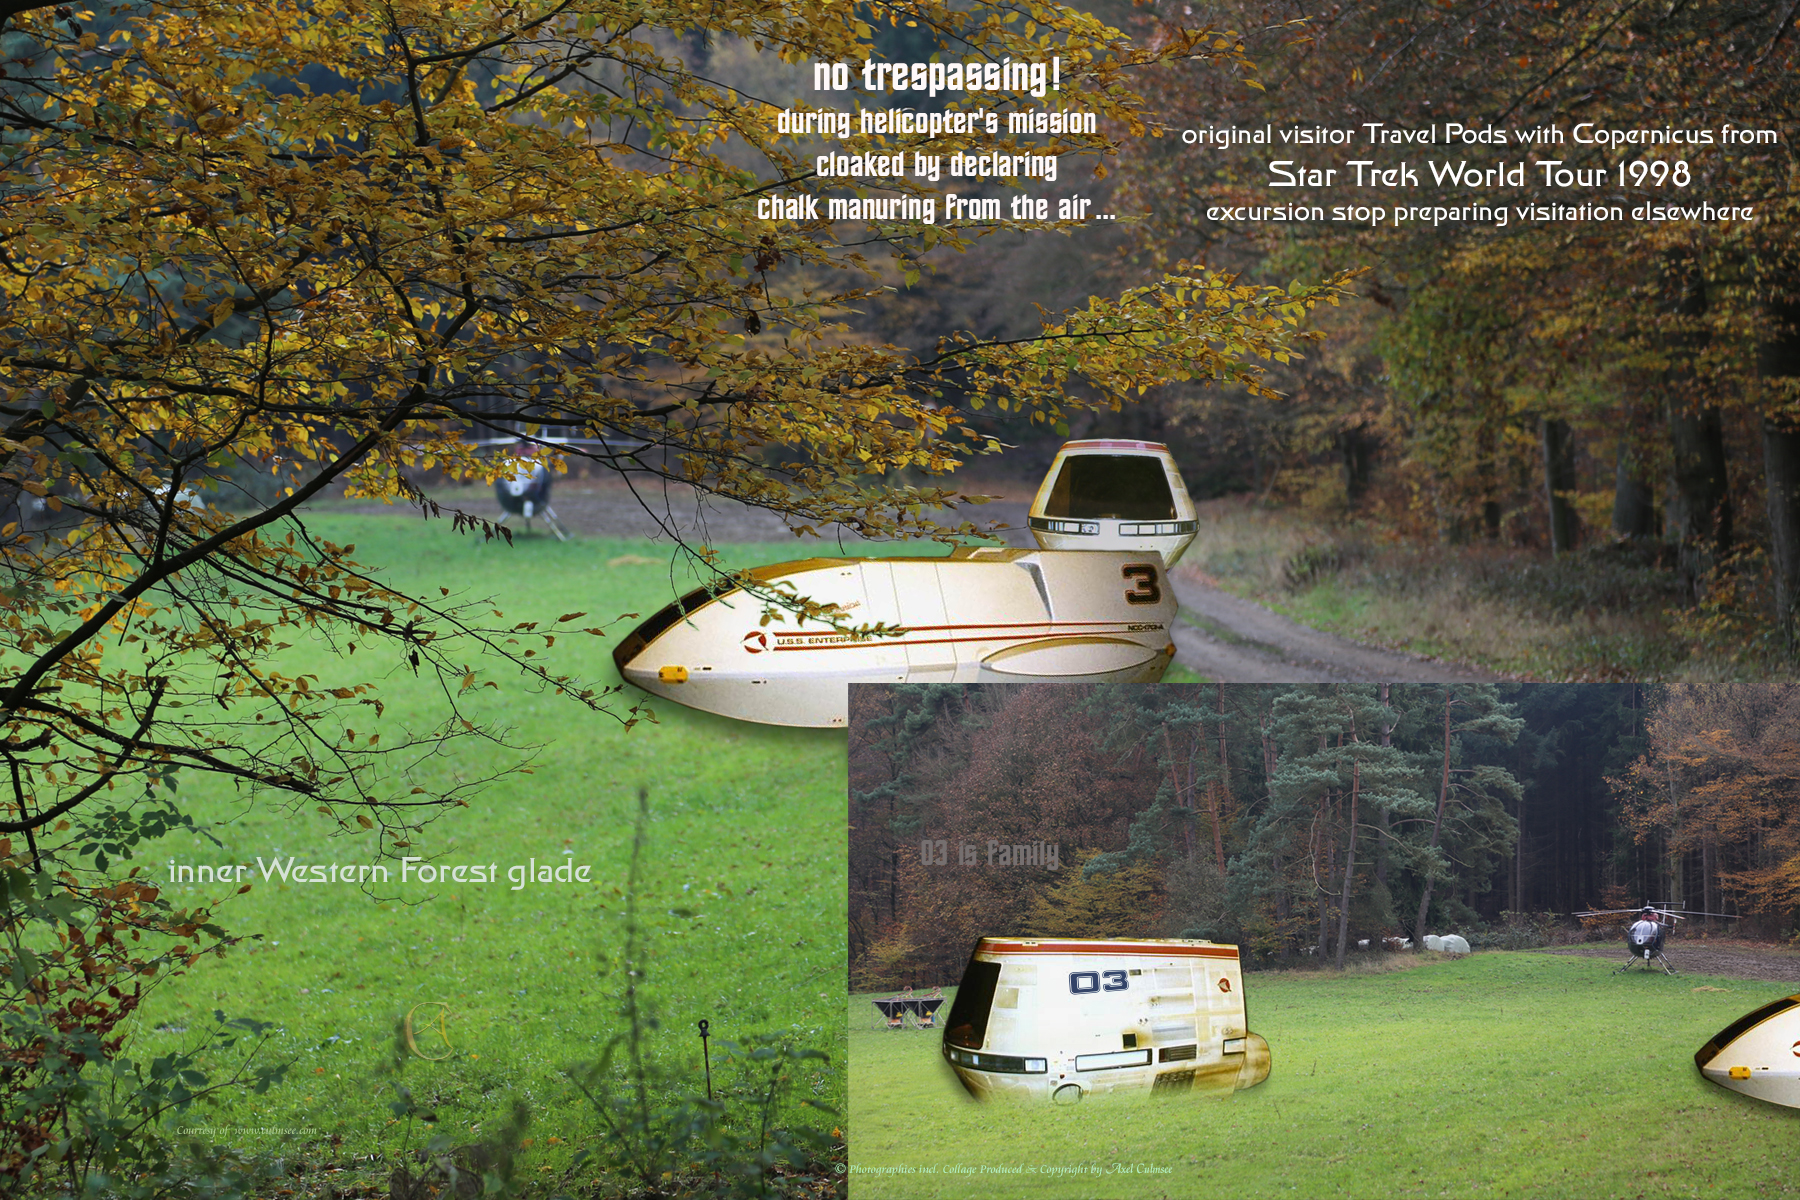 Travel Pods with Copernicus timeline STWT 1998 discovered on inner Western Forest glade